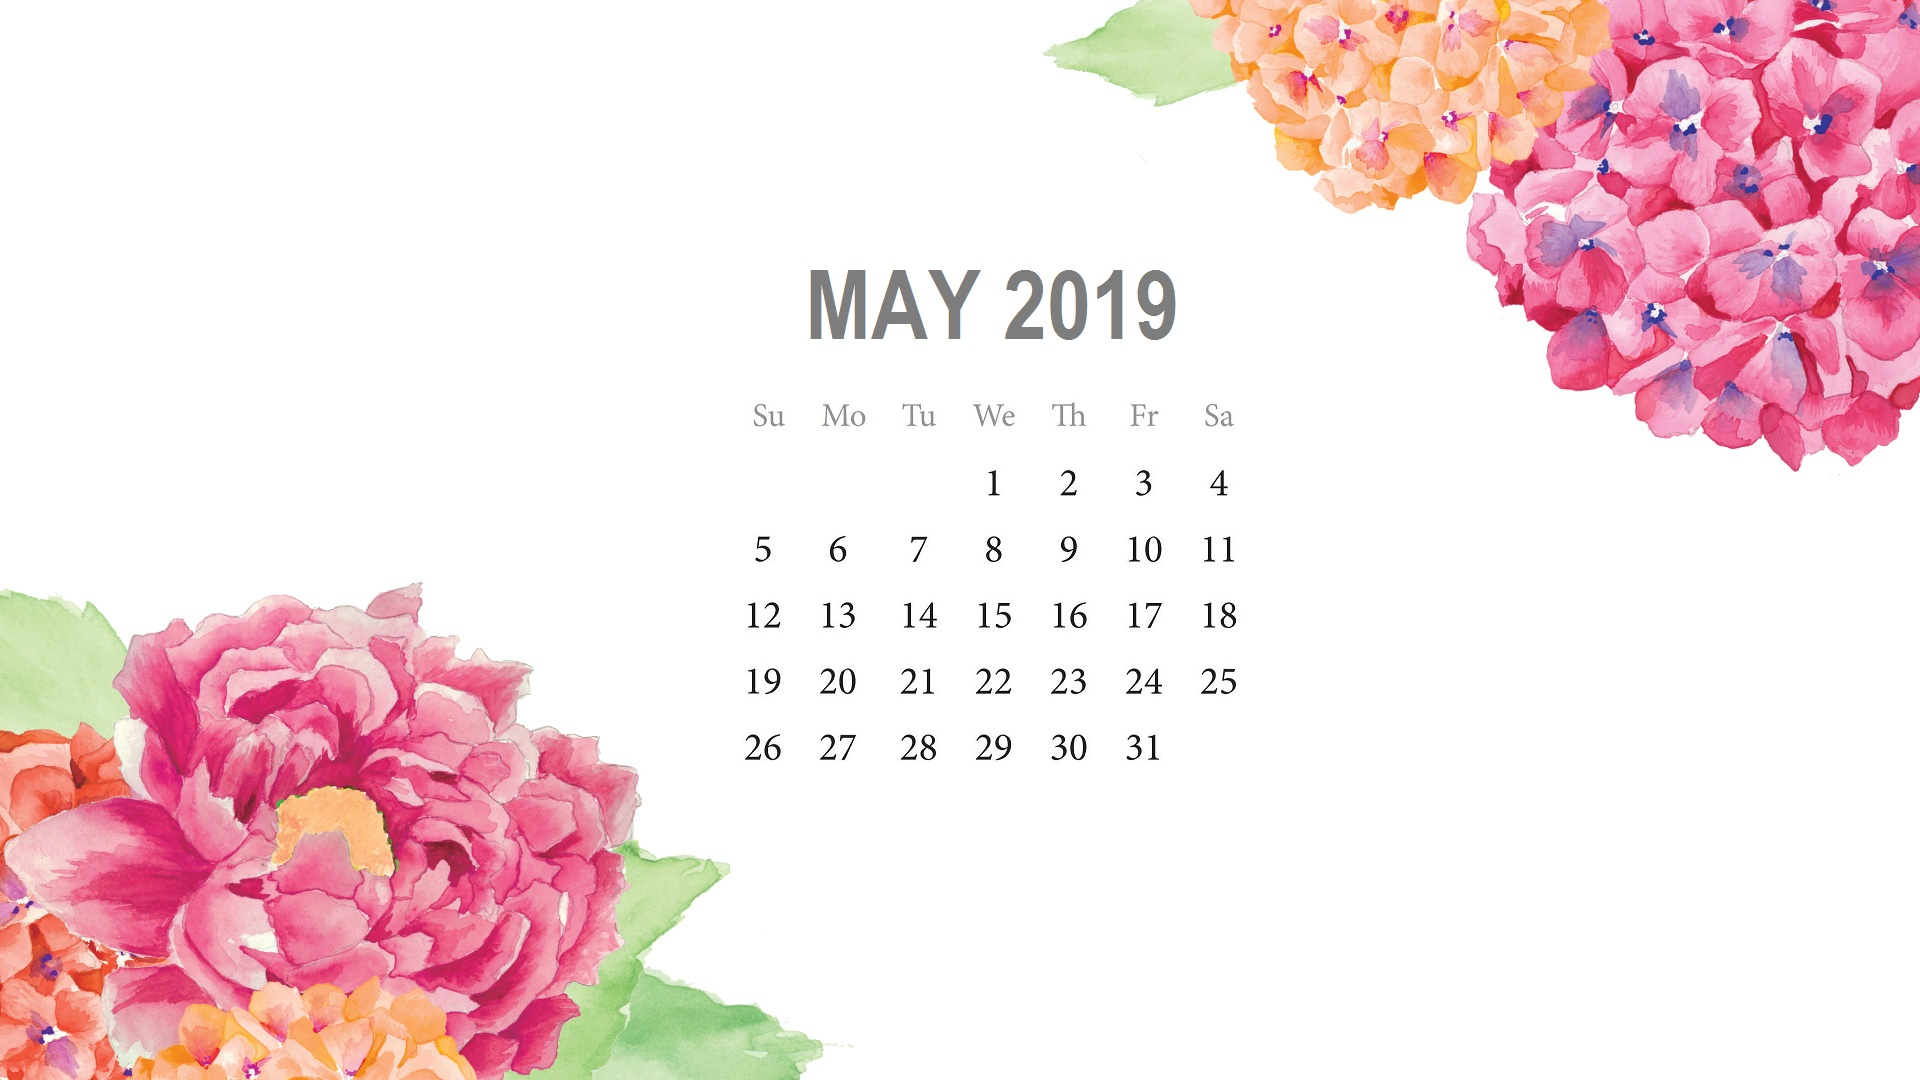 Cute May 2019 Watercolor Calendar